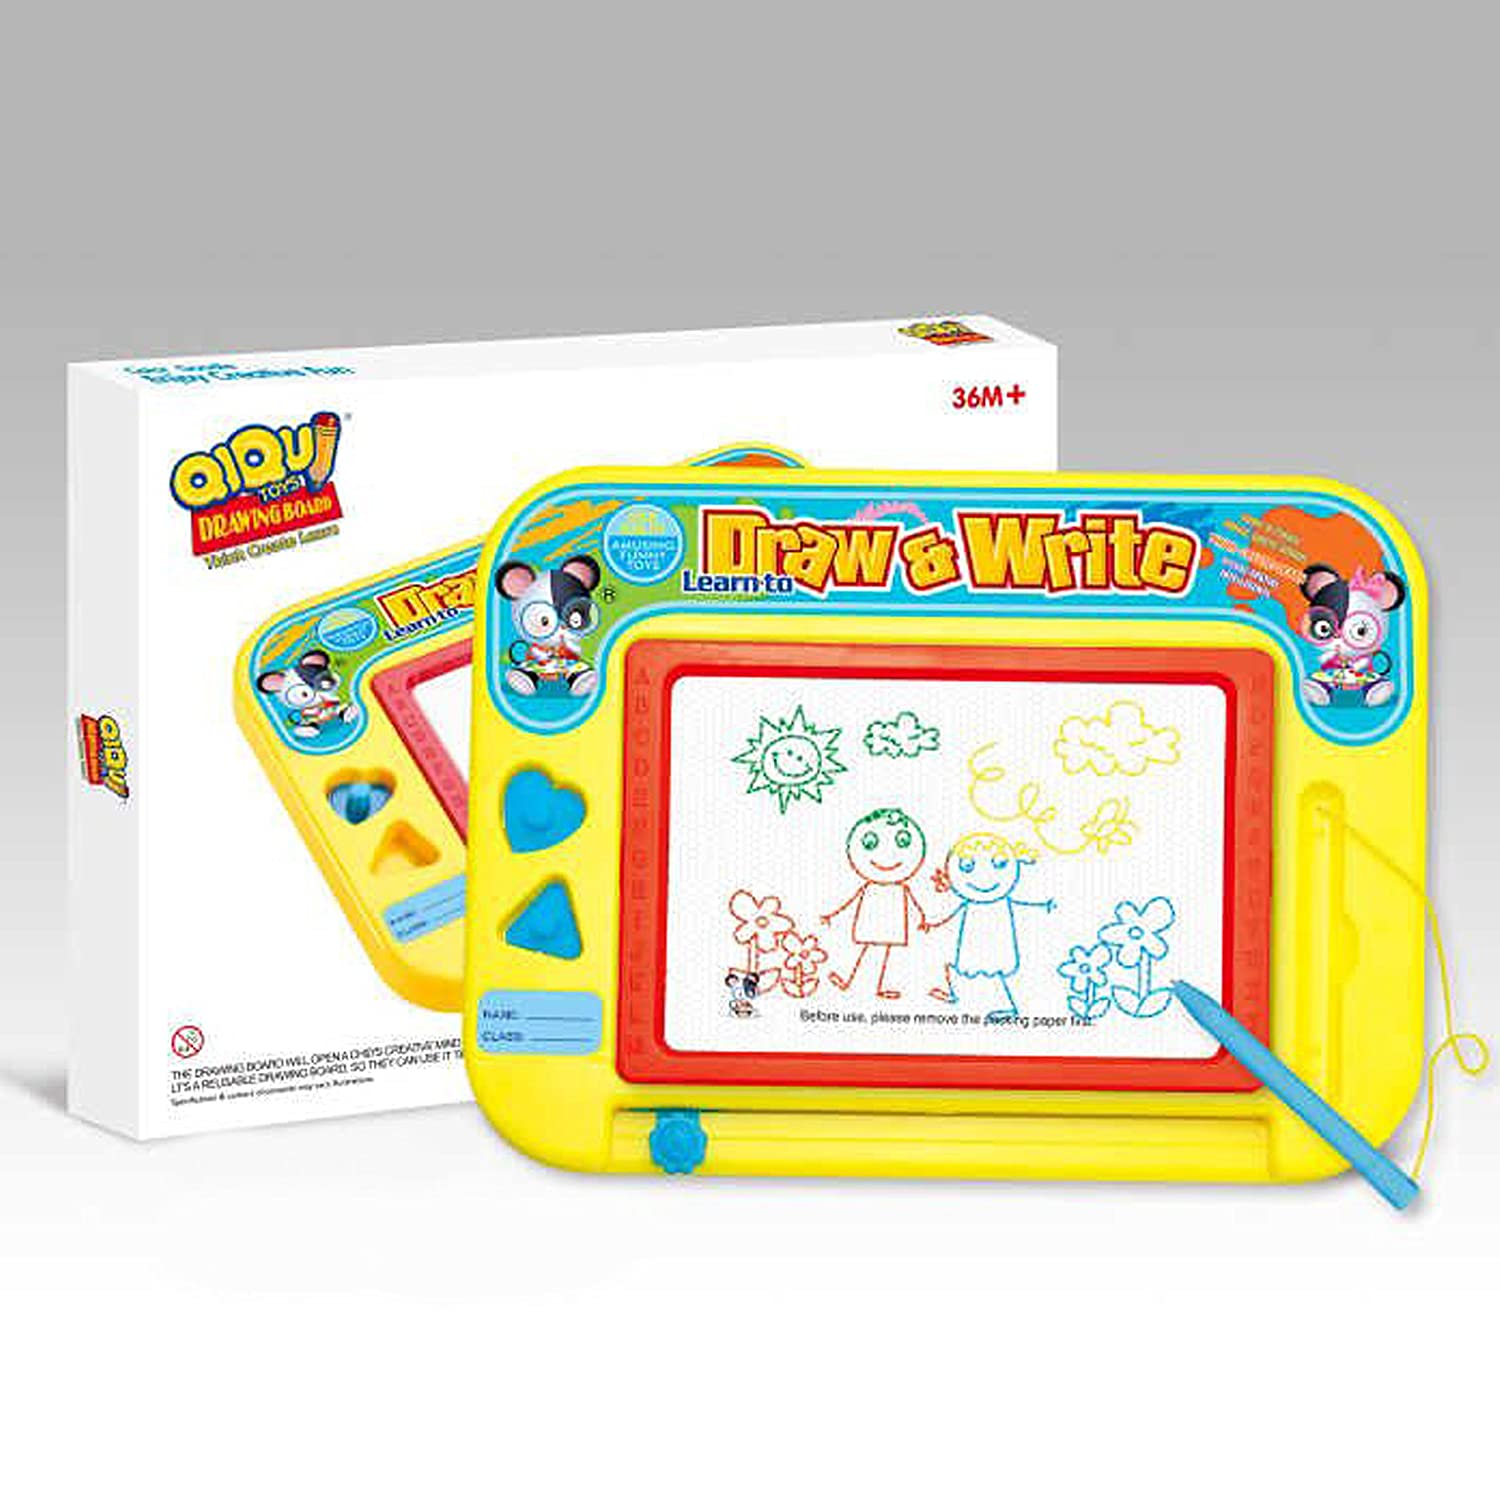 This Magnetic Drawing Board is The Perfect Art Activity for Kids To Develop their Creativity Erasable Colorful Magna Doodle Board /& Pen Best Gift For Boys and Girls The Wonder Company GREAT SKETCH PAD FOR CHILDREN